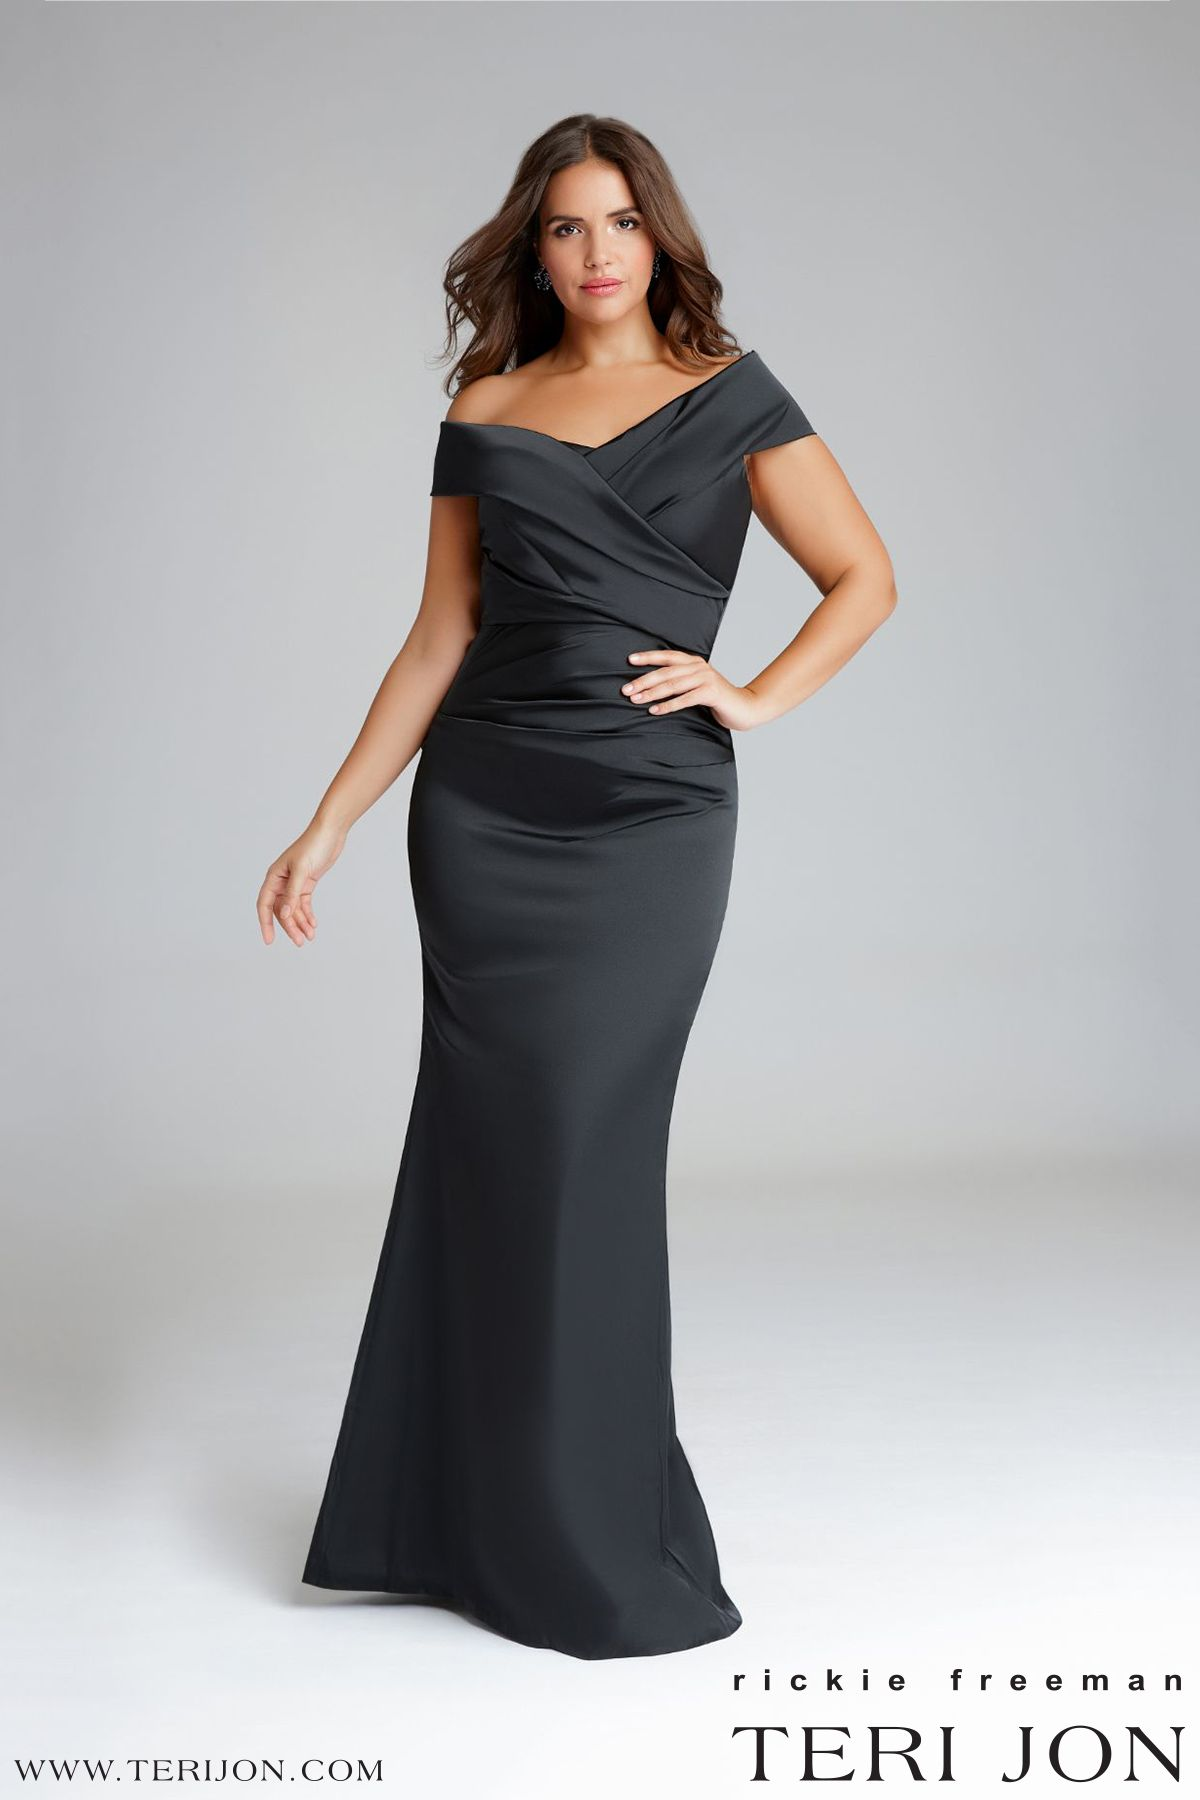 Plus Size Formal Gowns And Dresses Plus Size Gowns Formal Black Tie Event Dresses Plus Size Evening Gown [ 1800 x 1200 Pixel ]